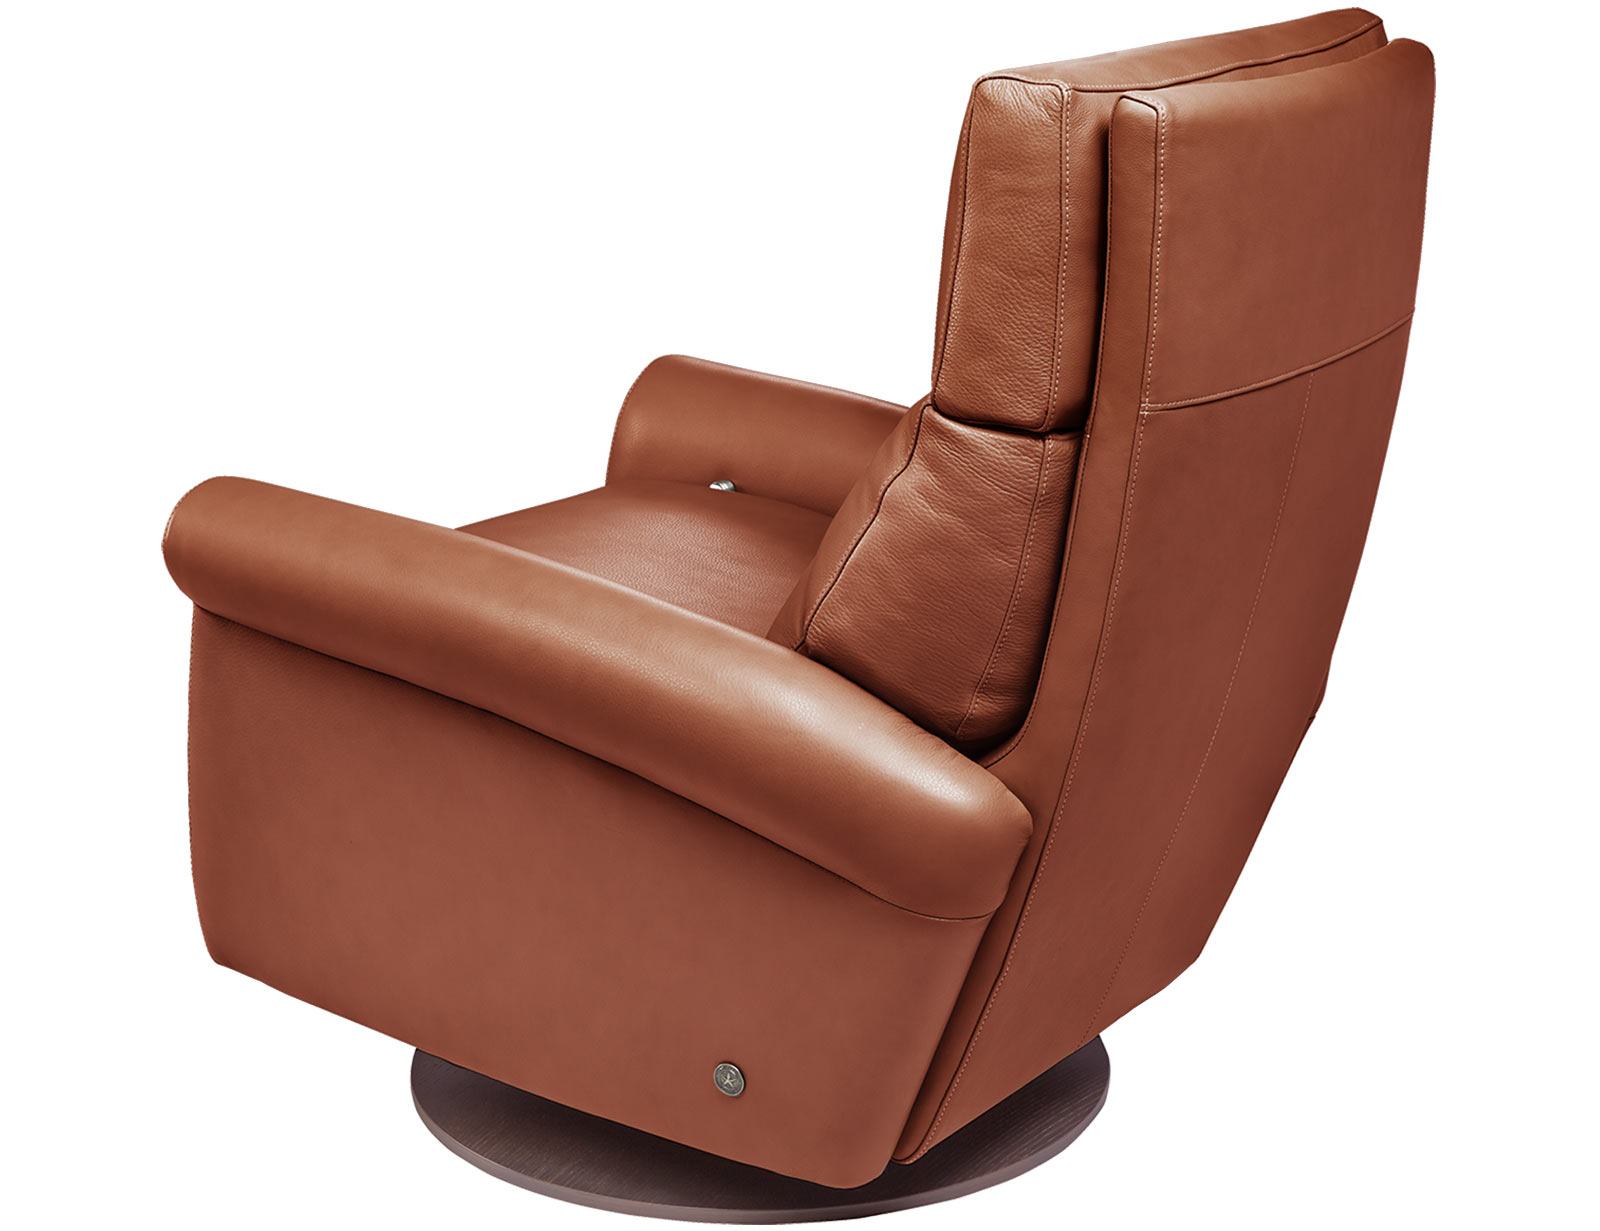 American Leather Adley Comfort Recliner available with swivel base